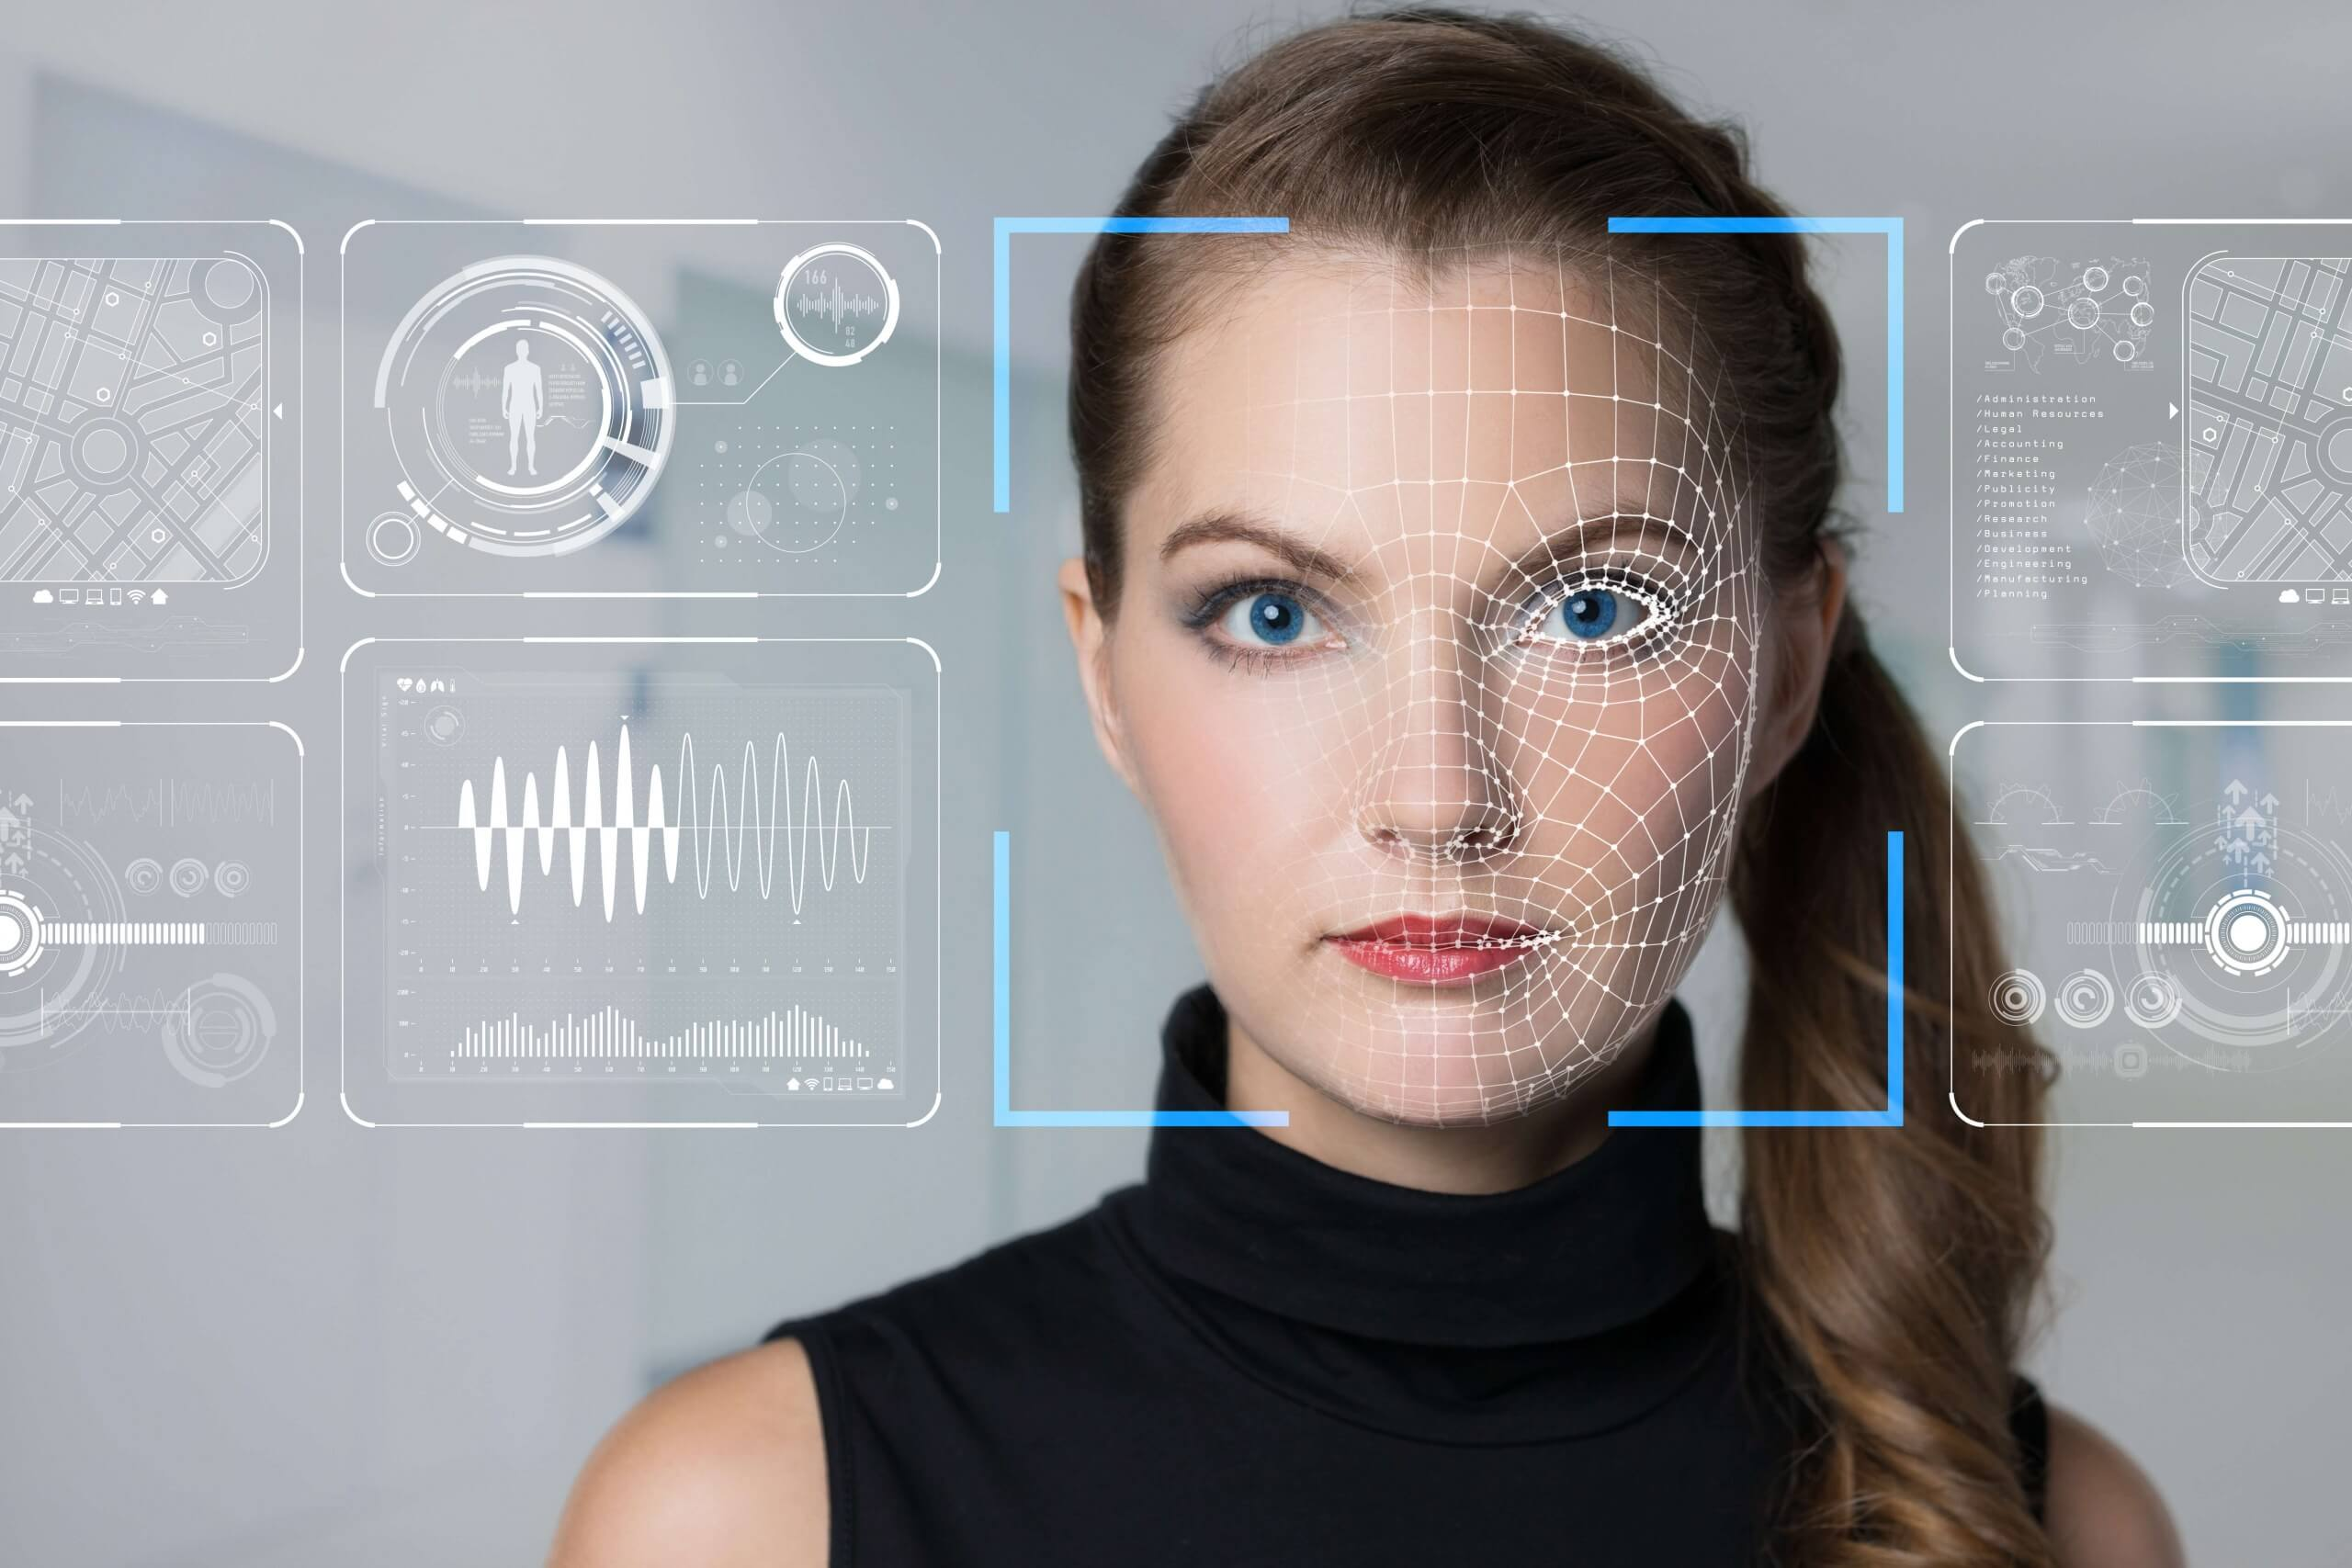 European Commission considers tighter regulation of facial recognition data